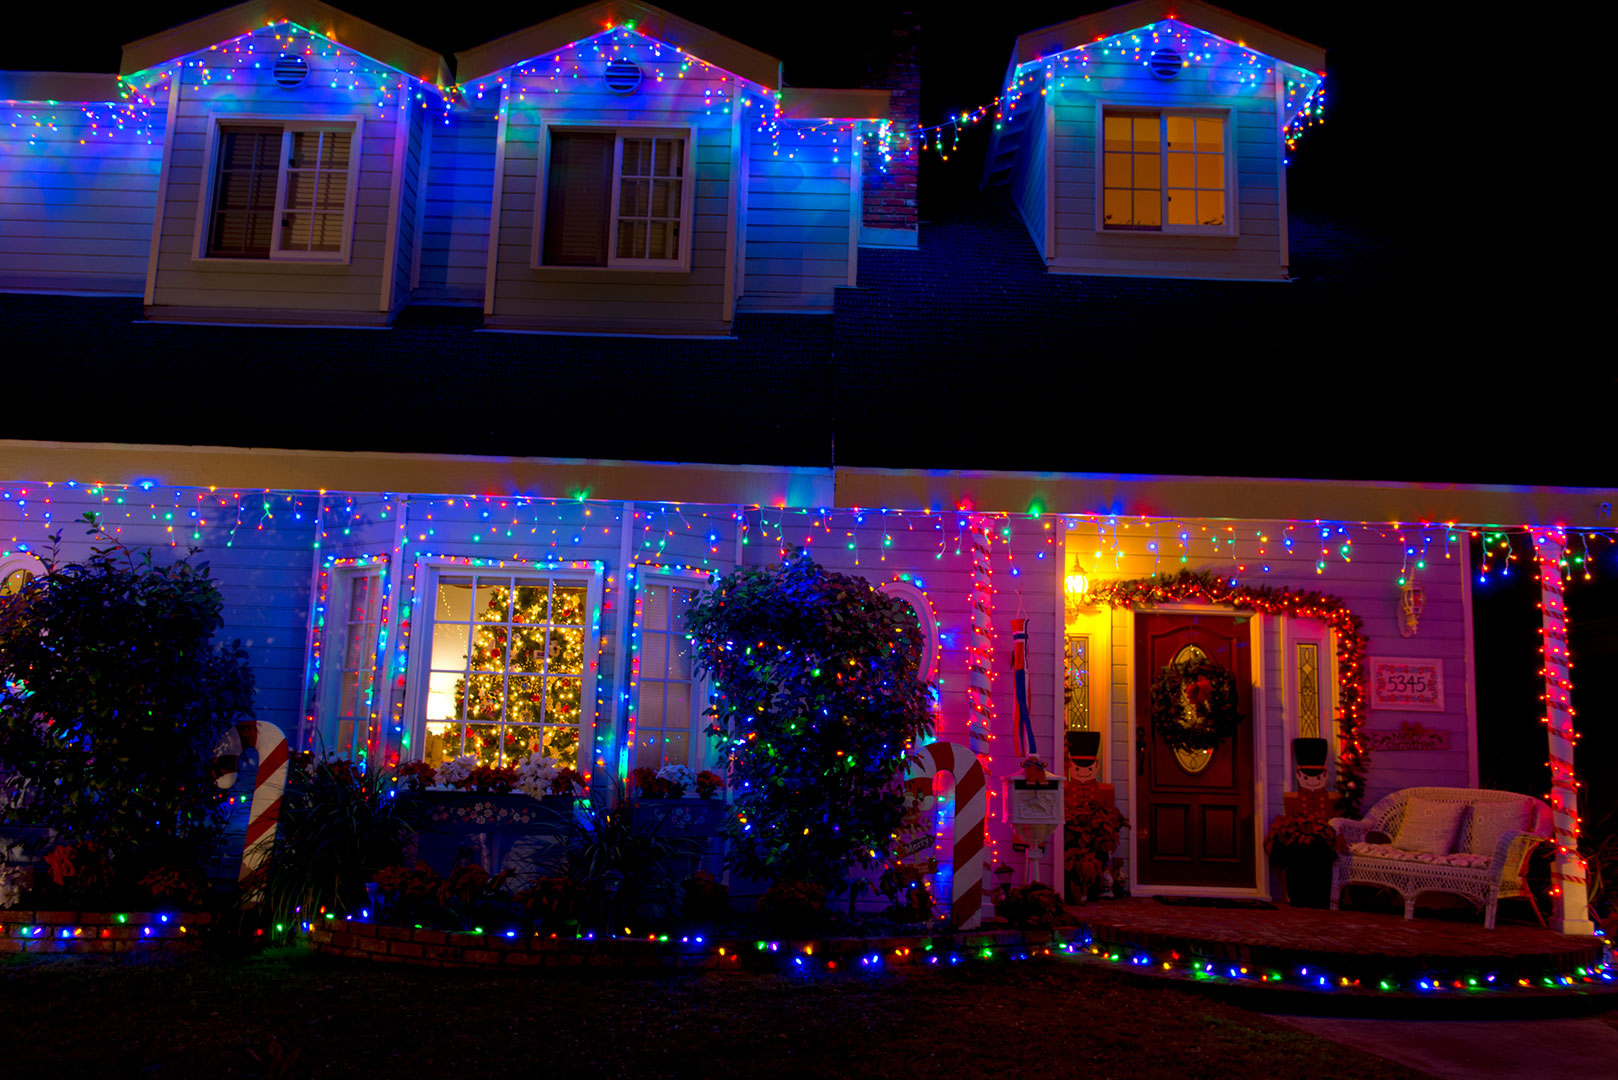 Christmas Lights Example #1